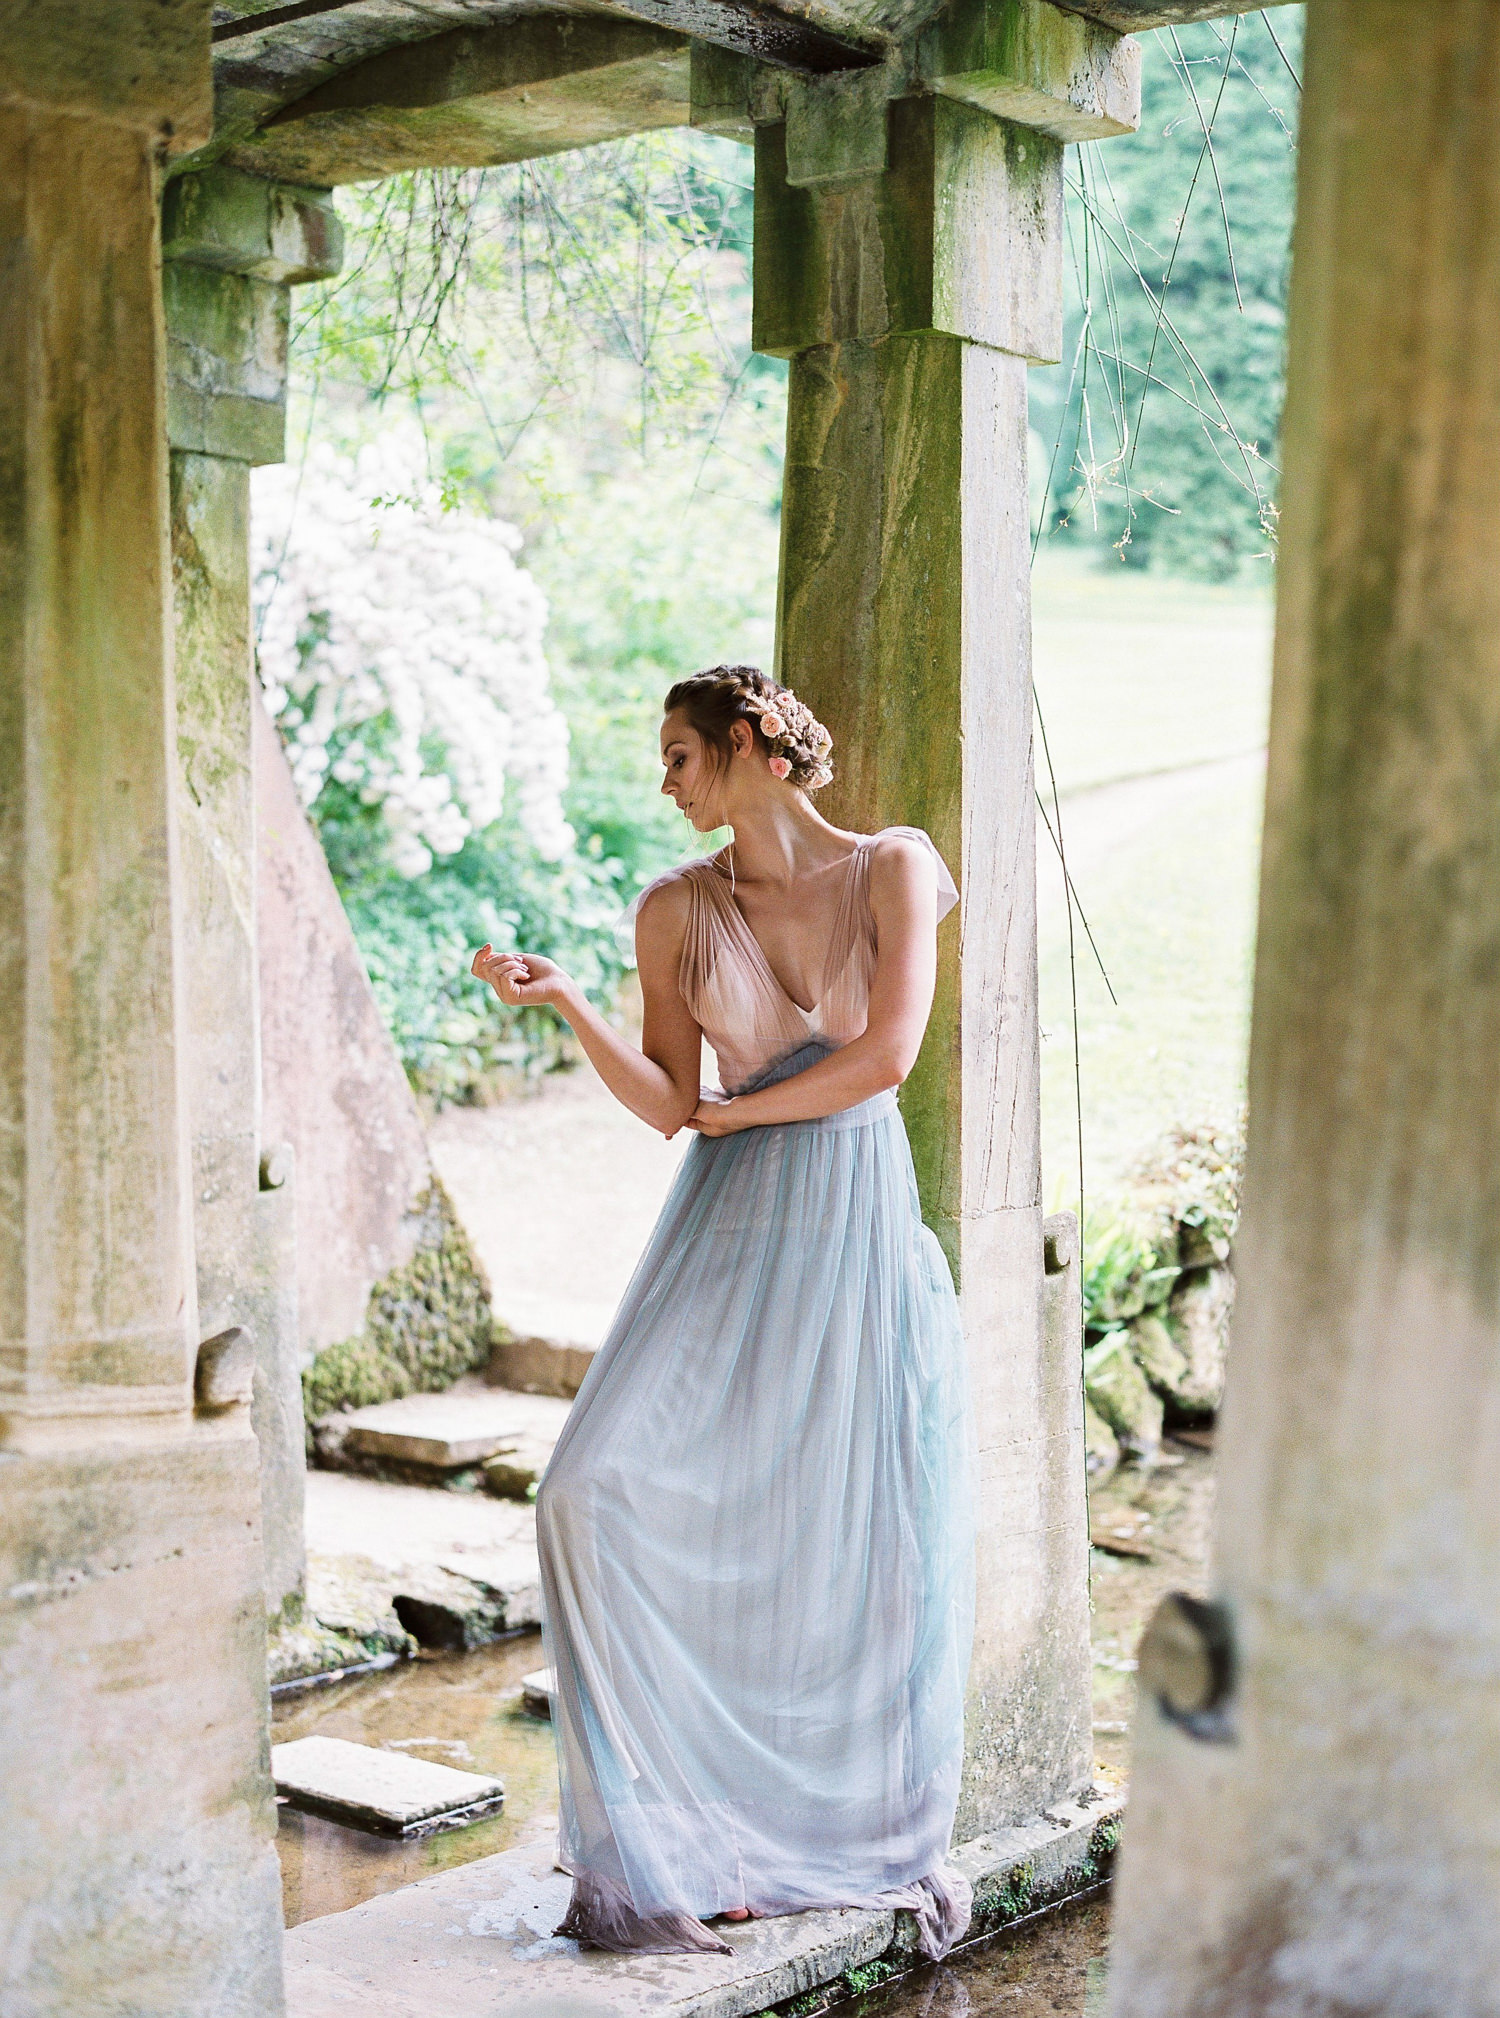 Sophia Kokosalaki, Sezincote House & Gardens, coloured wedding dress